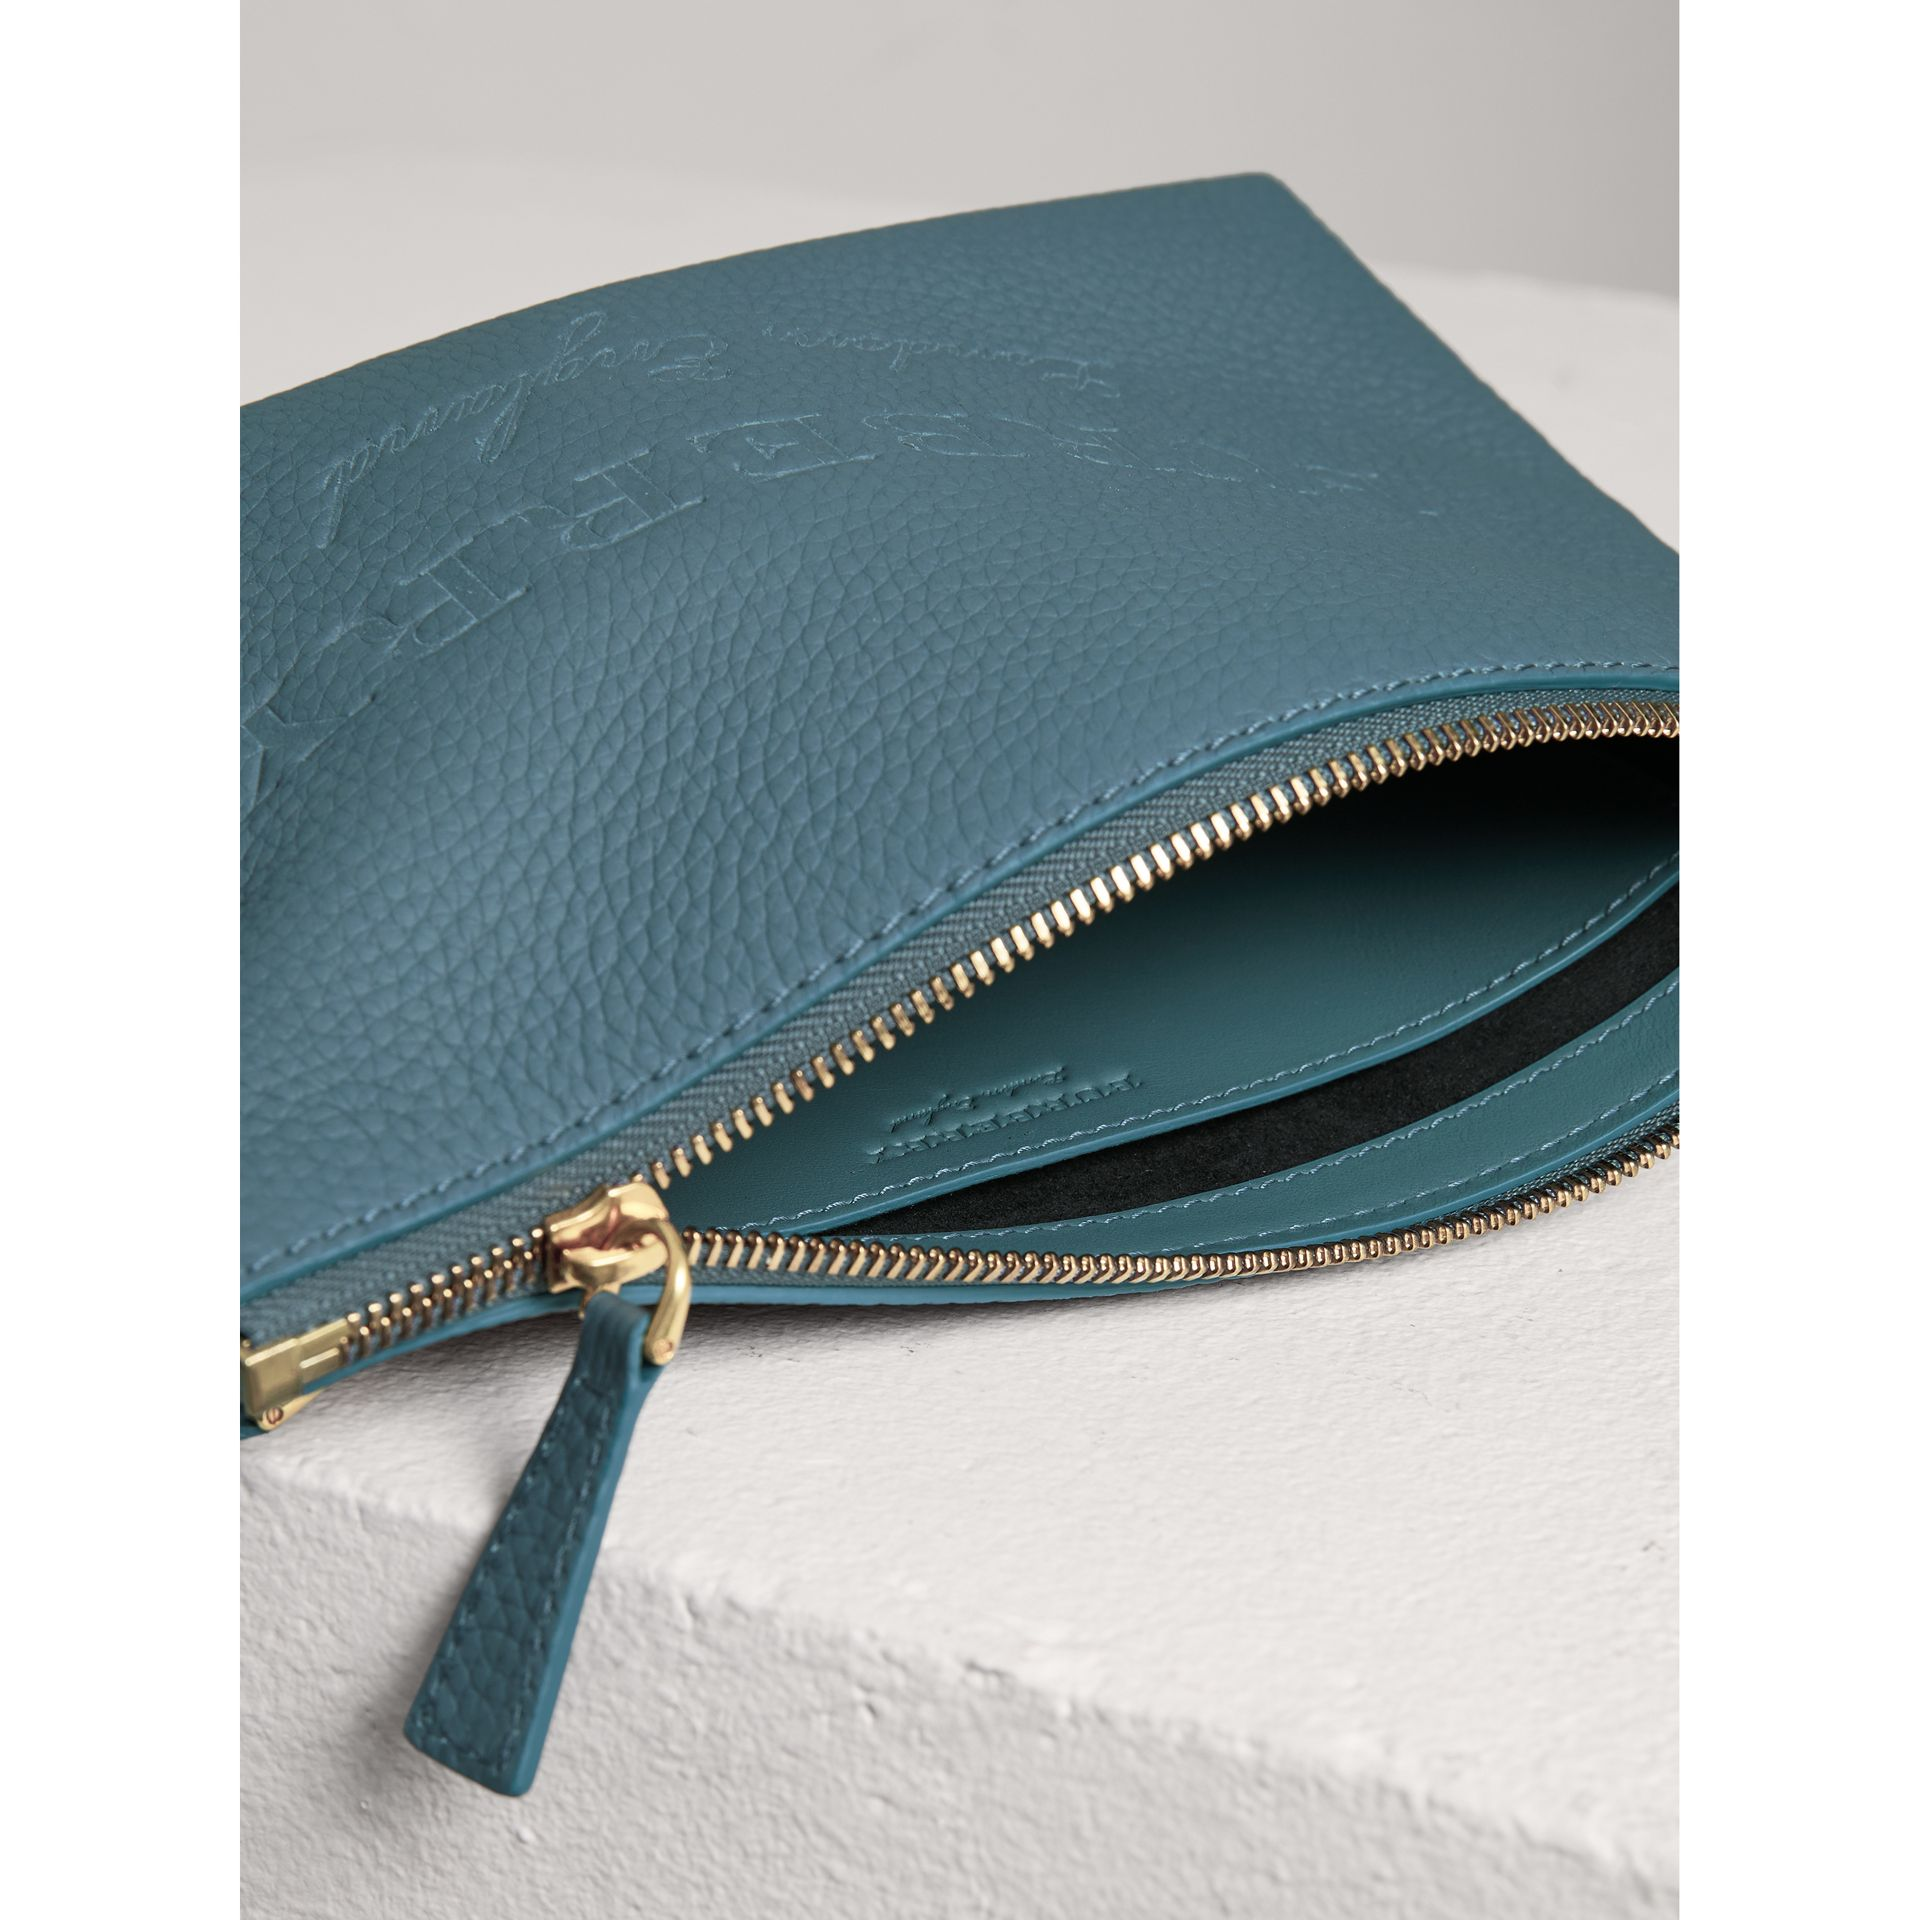 Medium Embossed Leather Zip Pouch in Dusty Teal Blue | Burberry - gallery image 3